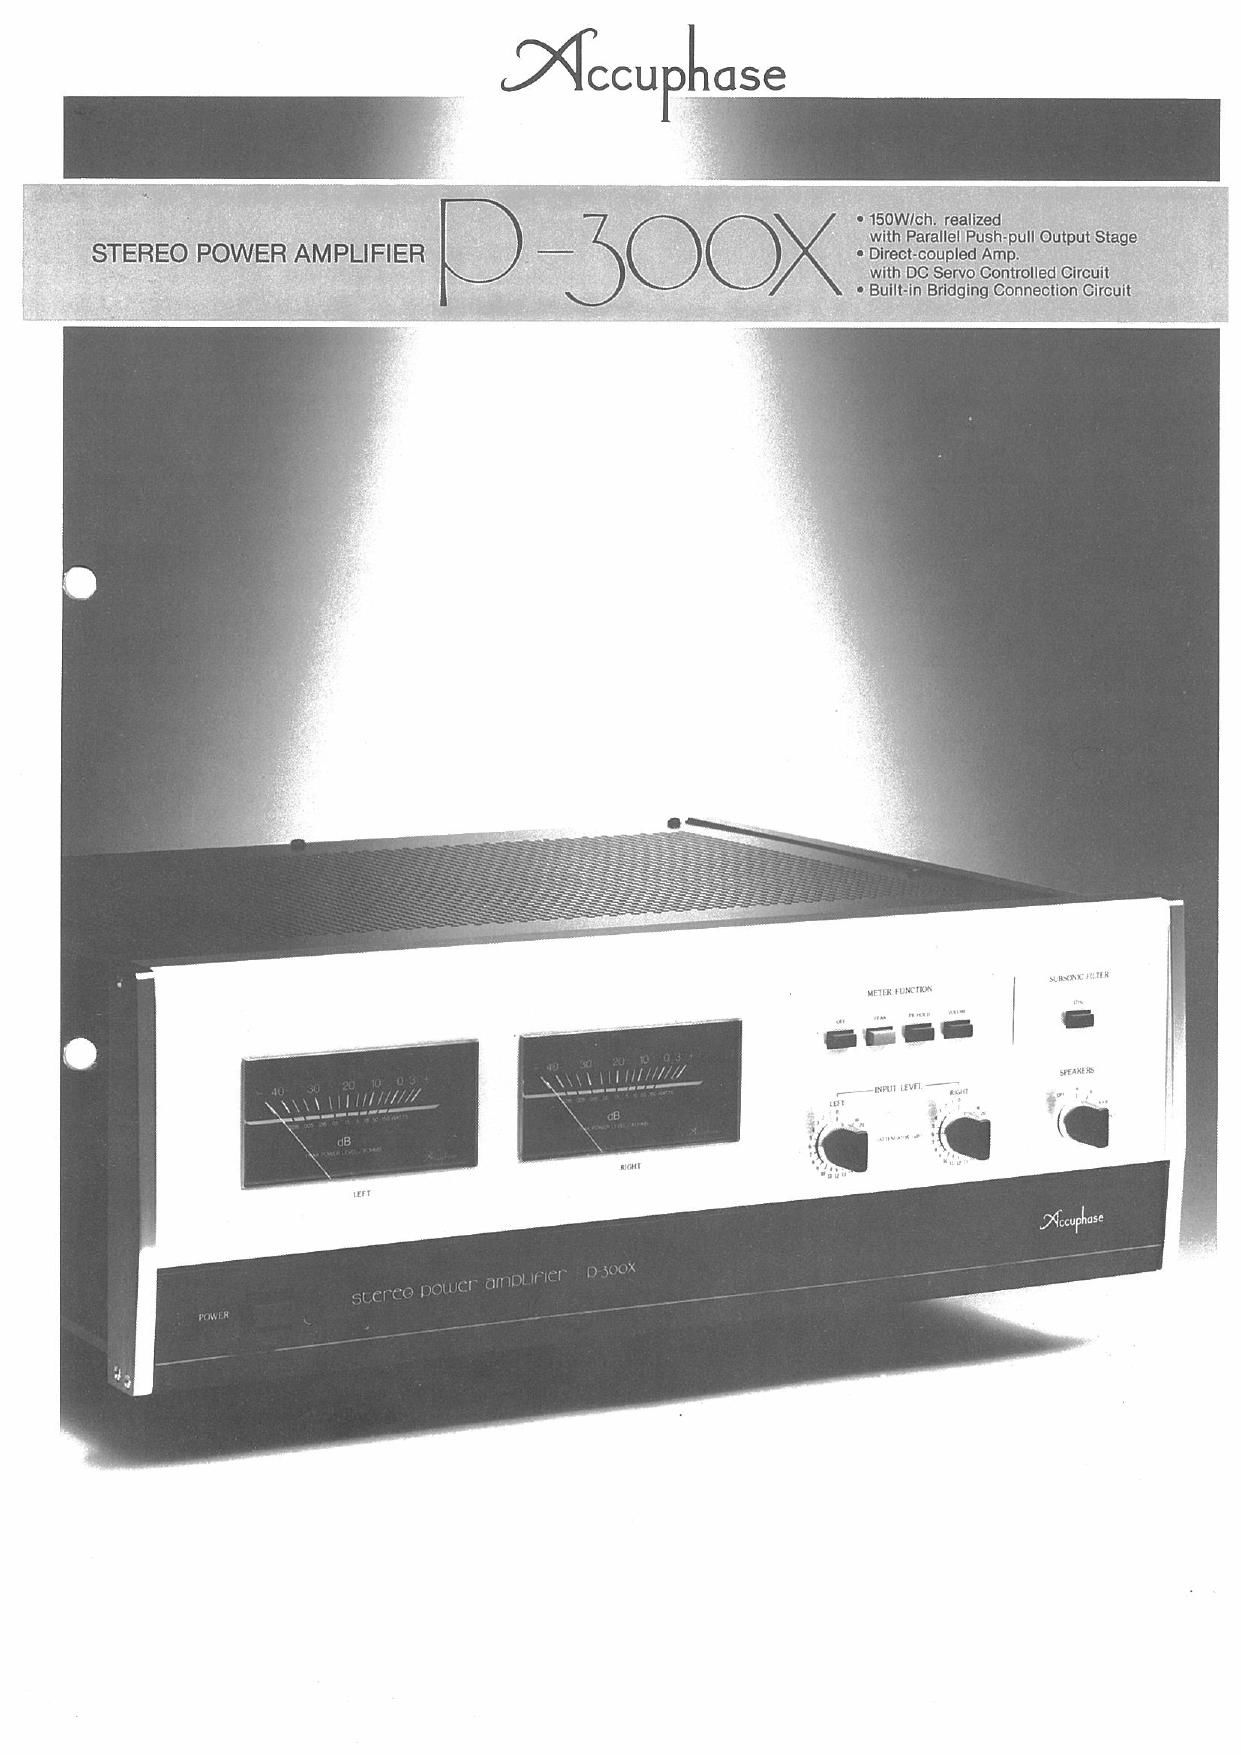 Accuphase P 300 X Brochure